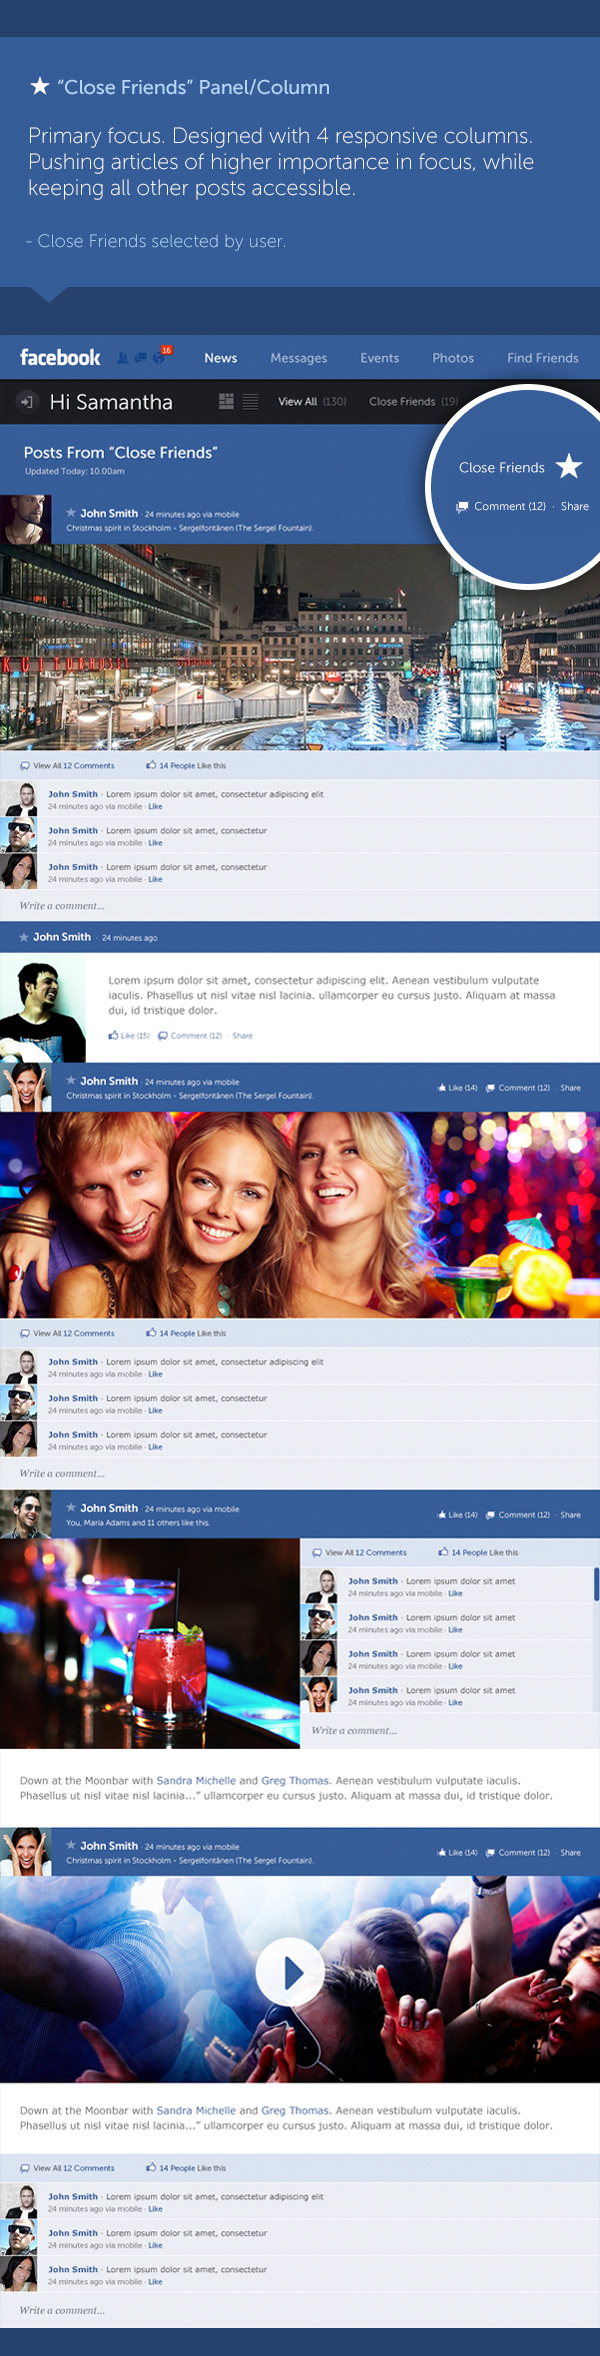 facebook_new_look_concept_5